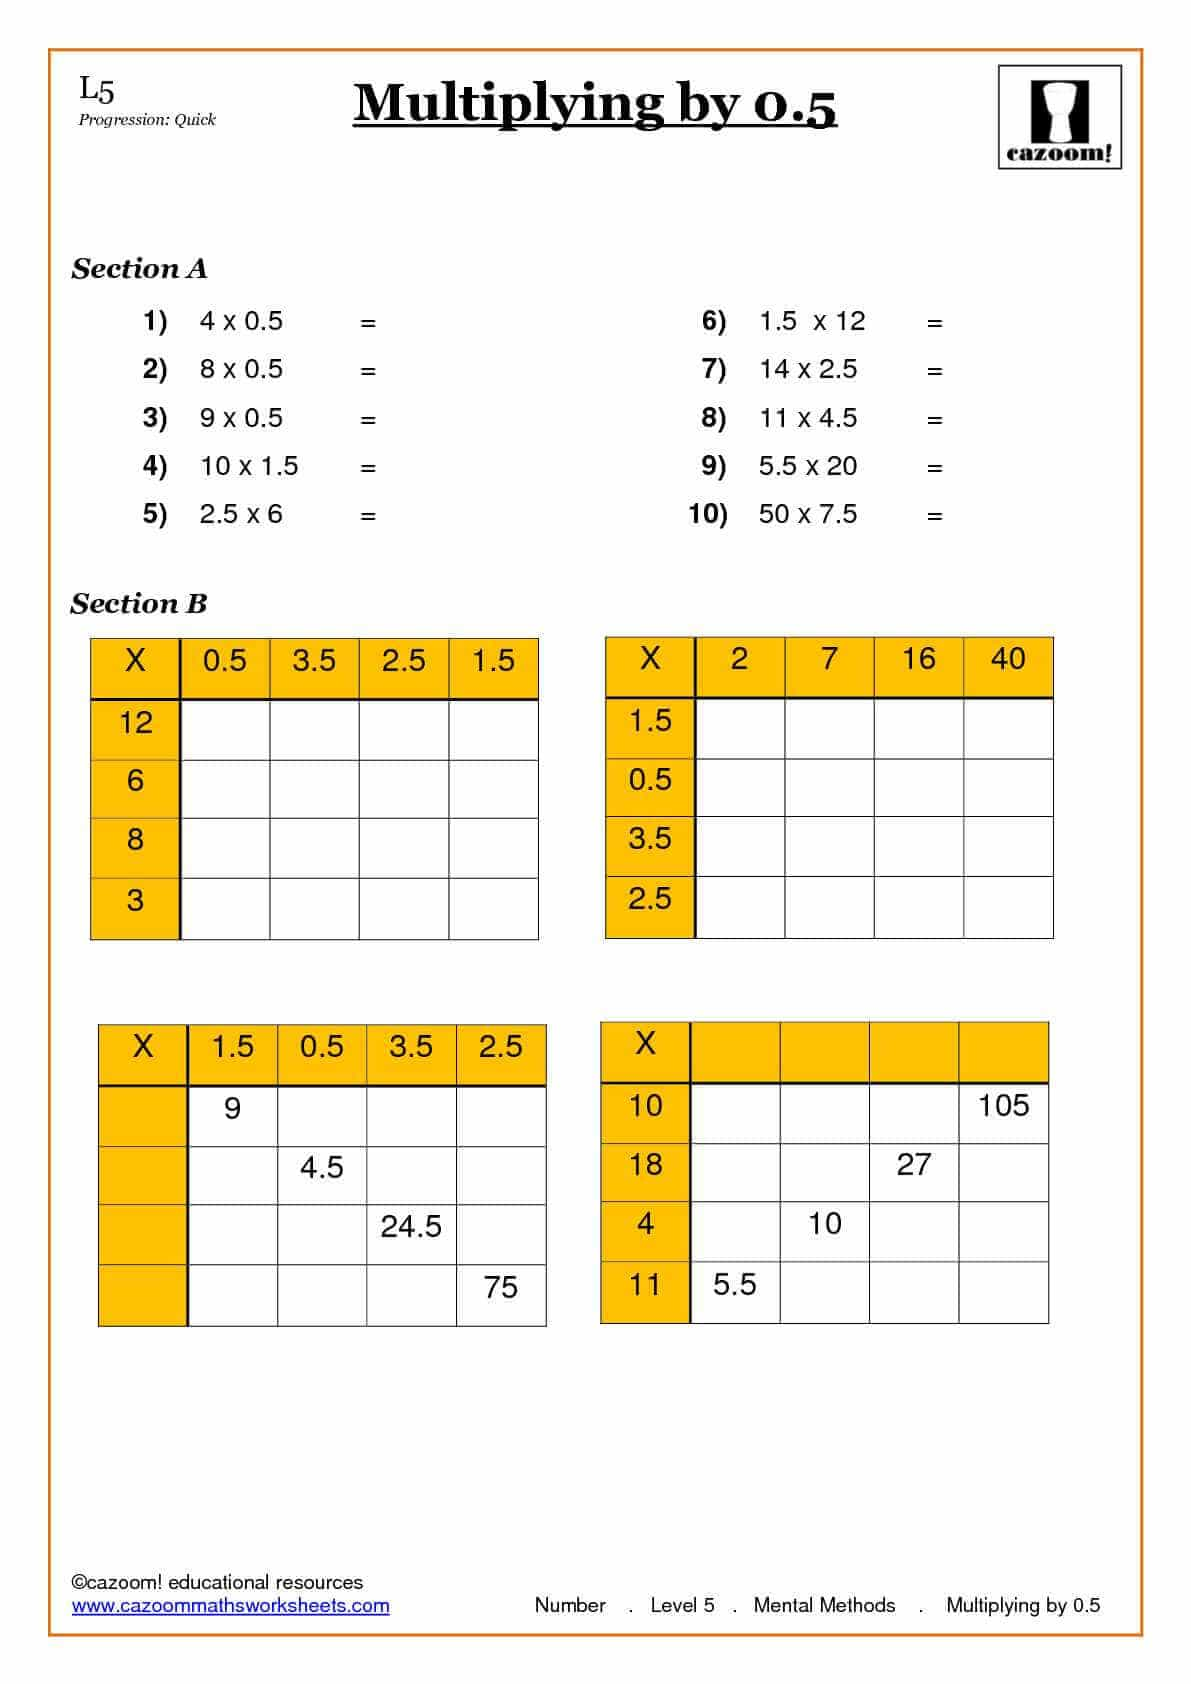 Free Ks3 Maths Worksheets Printable And Free Easter Maths Worksheets Ks3